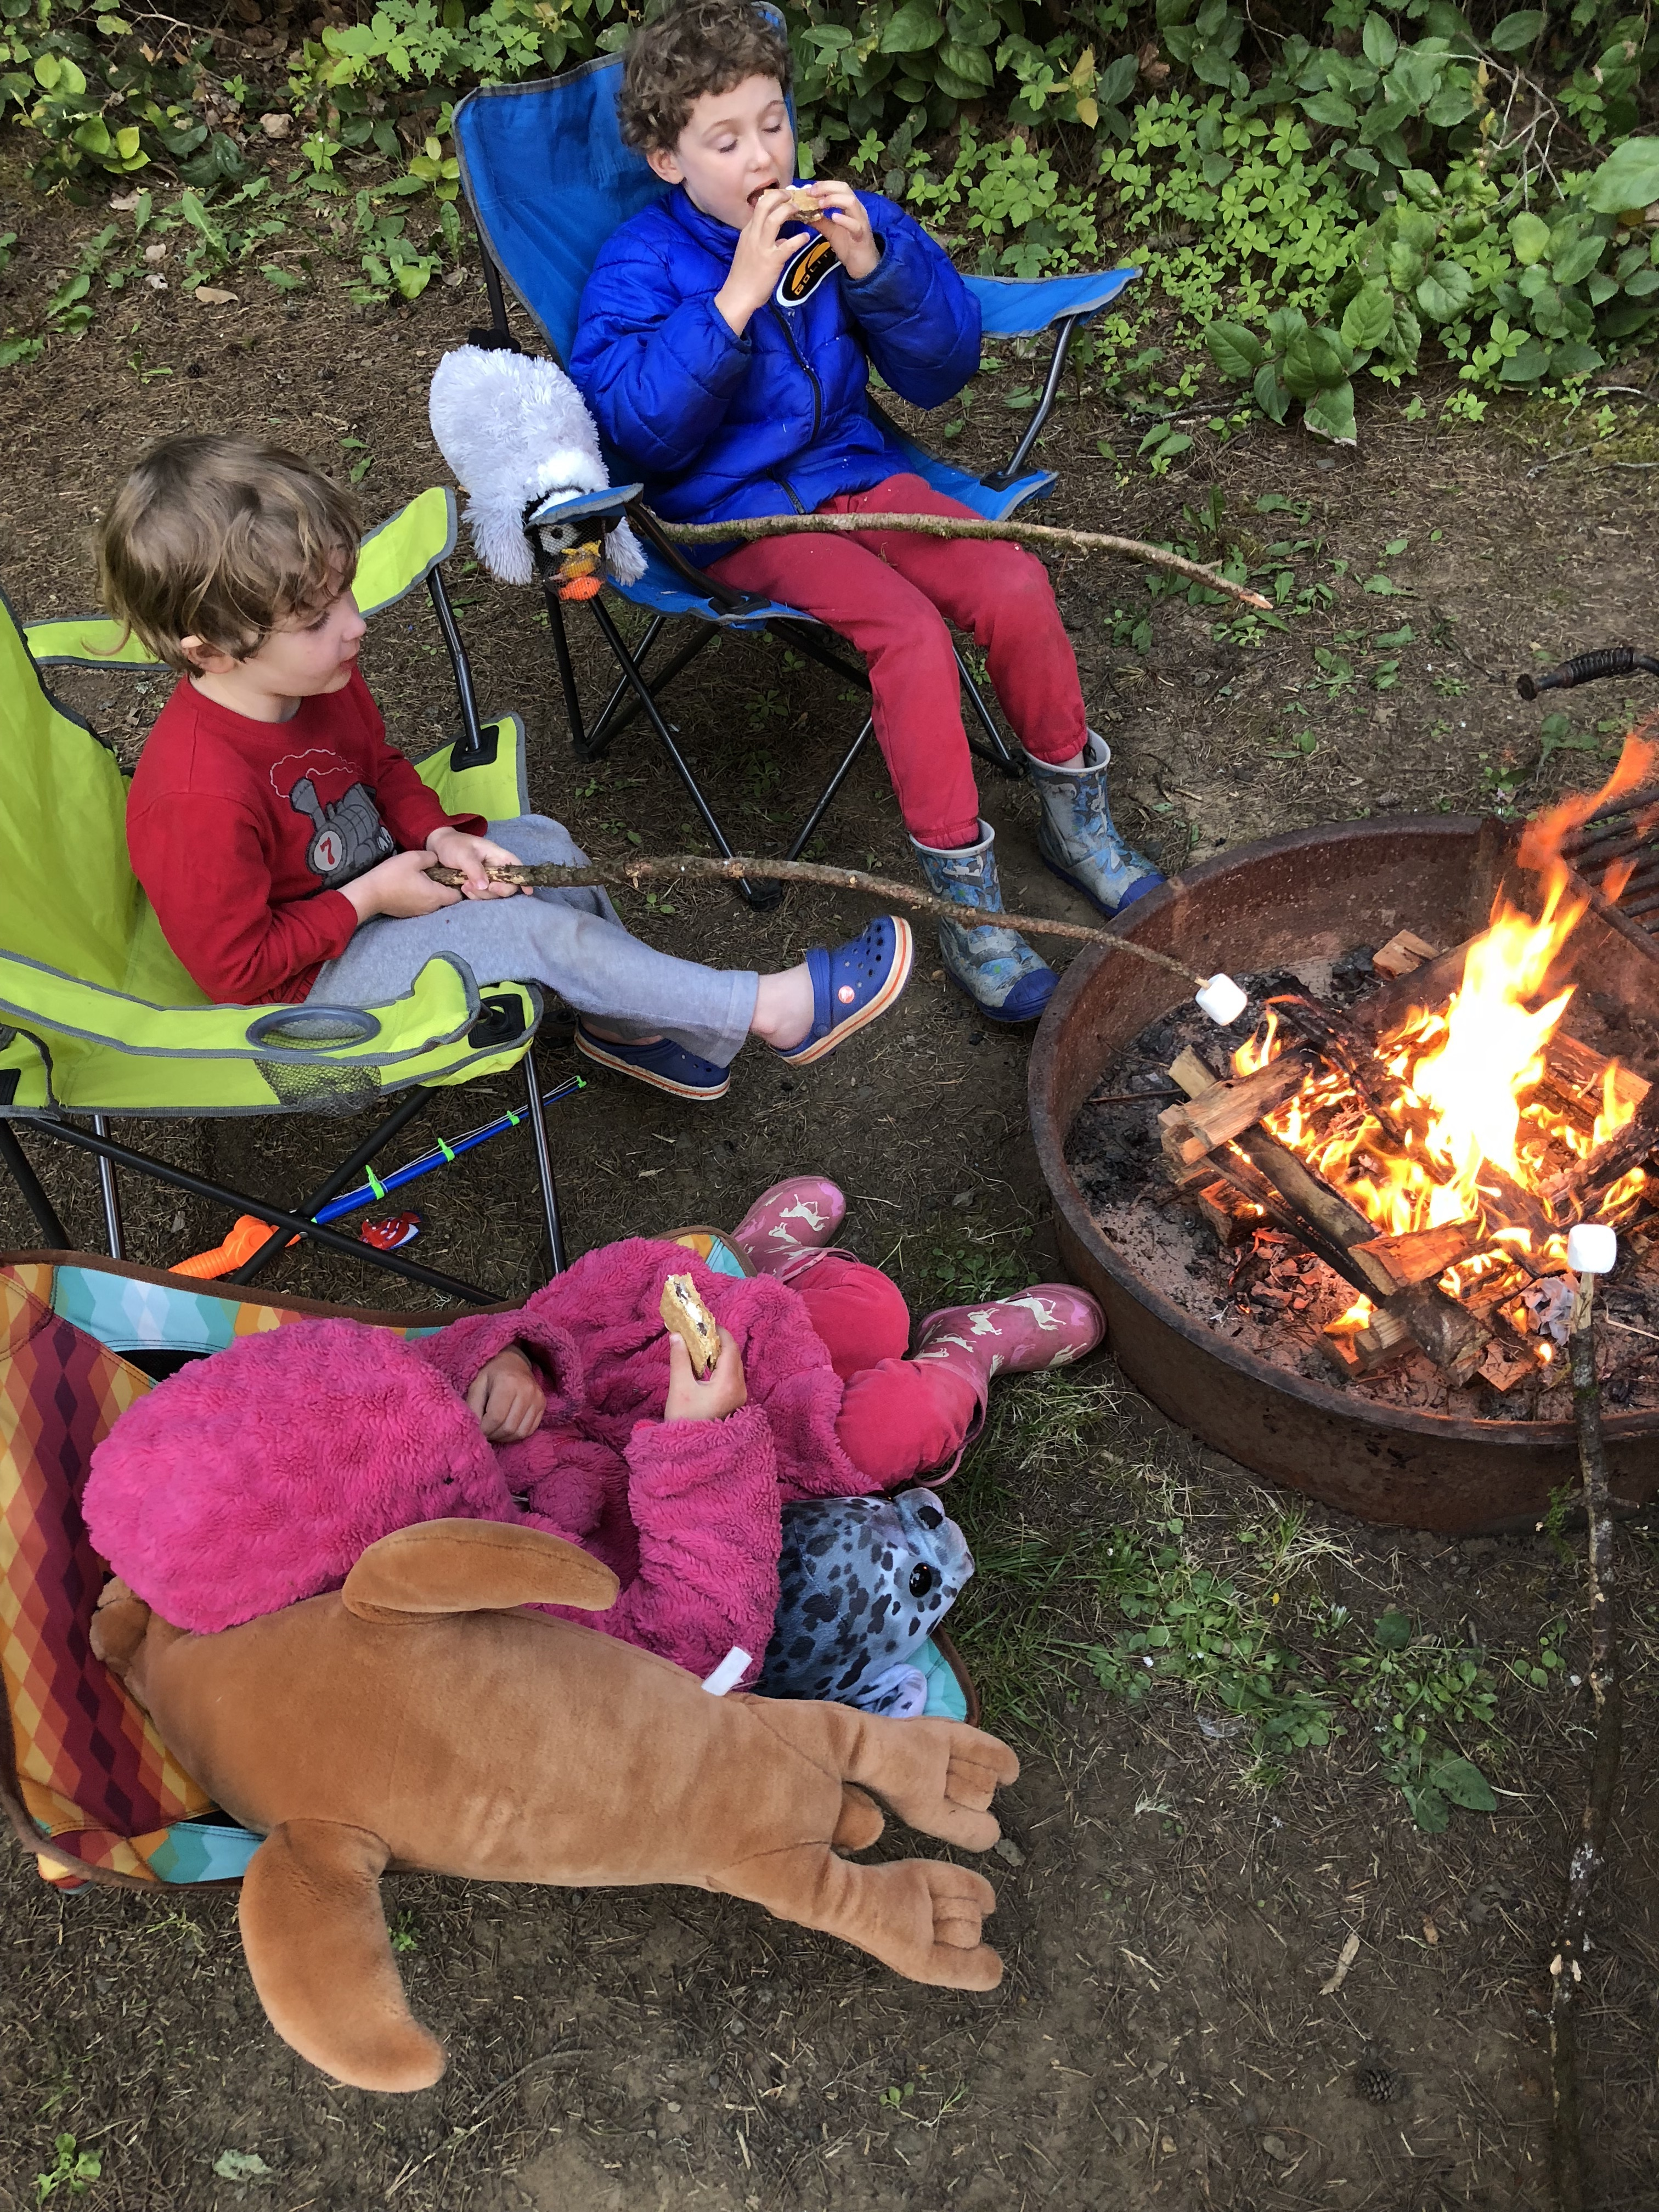 Memorial Day camping kids roasting marshmallows around campfire while sitting in camp chairs